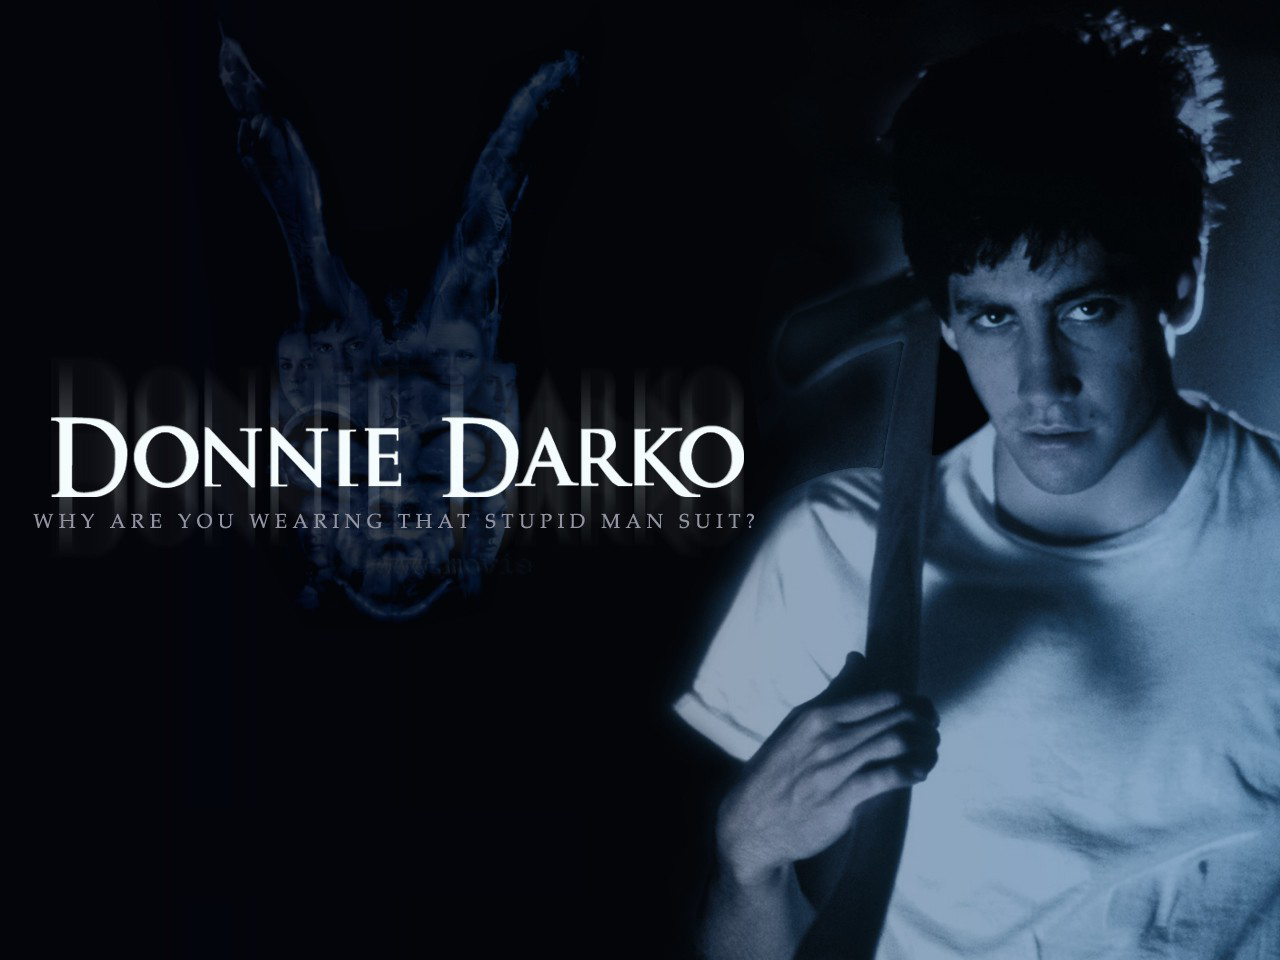 donnie darko Jake gyllenhaal HD Wallpaper